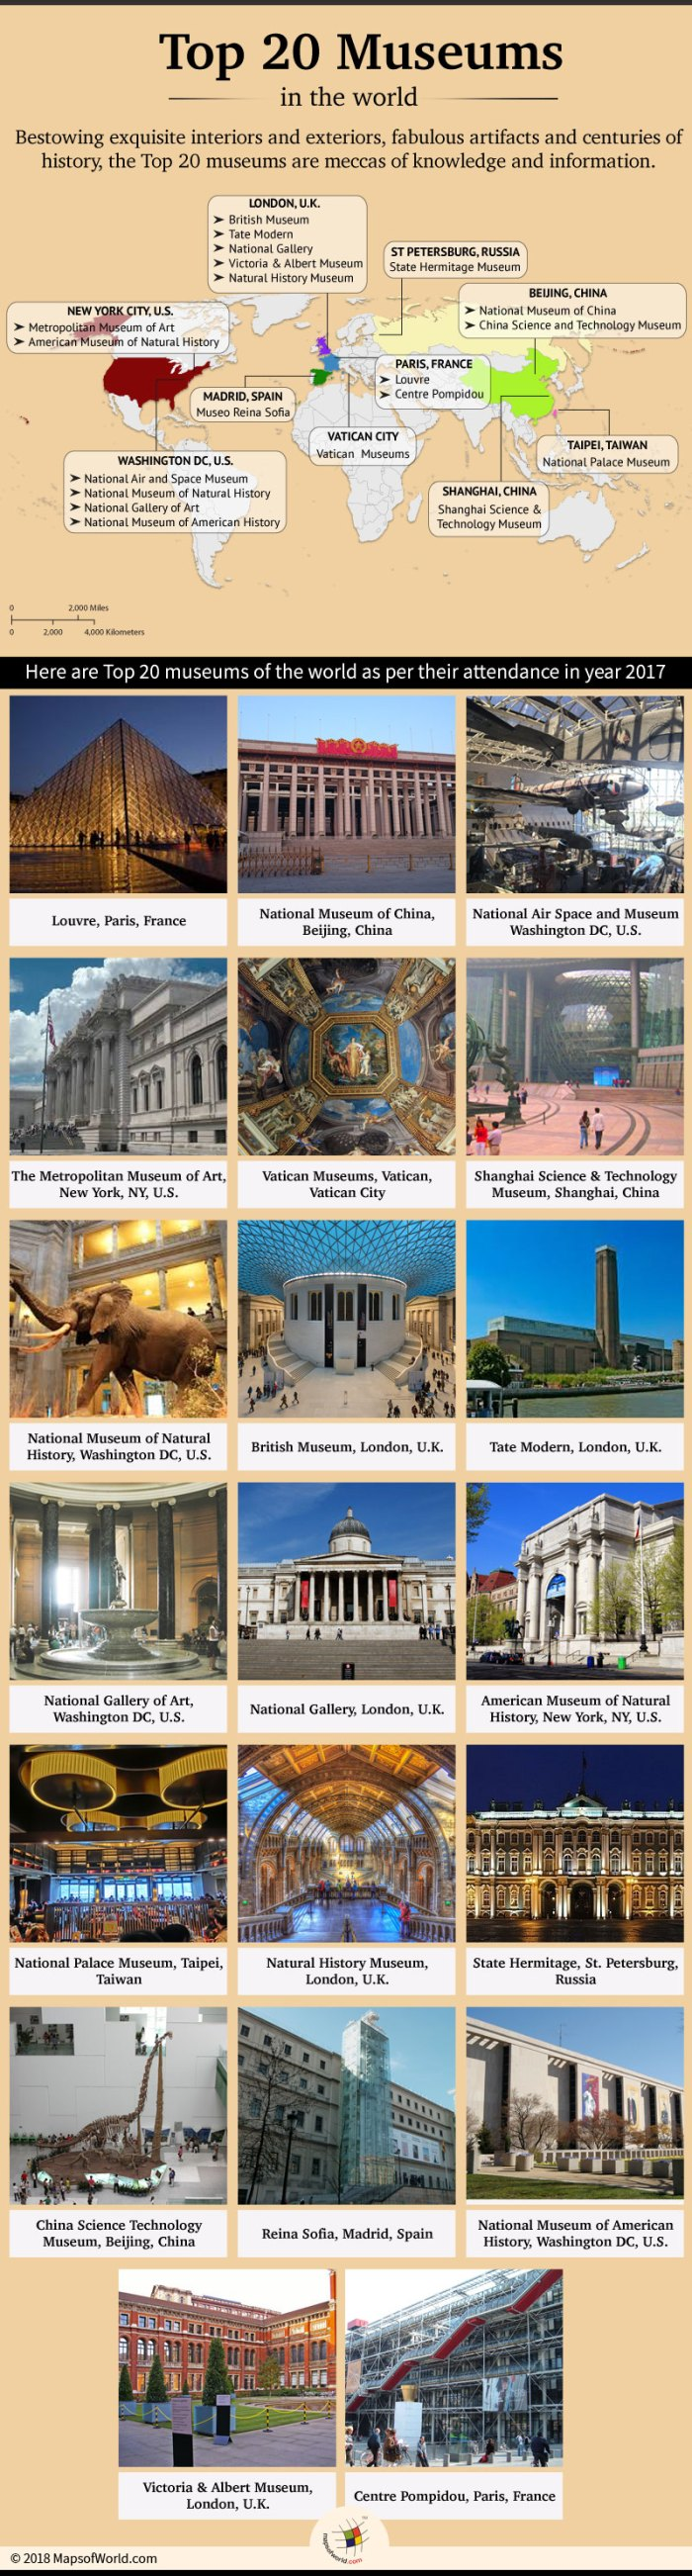 Infographic elaborating top 20 museums of the world